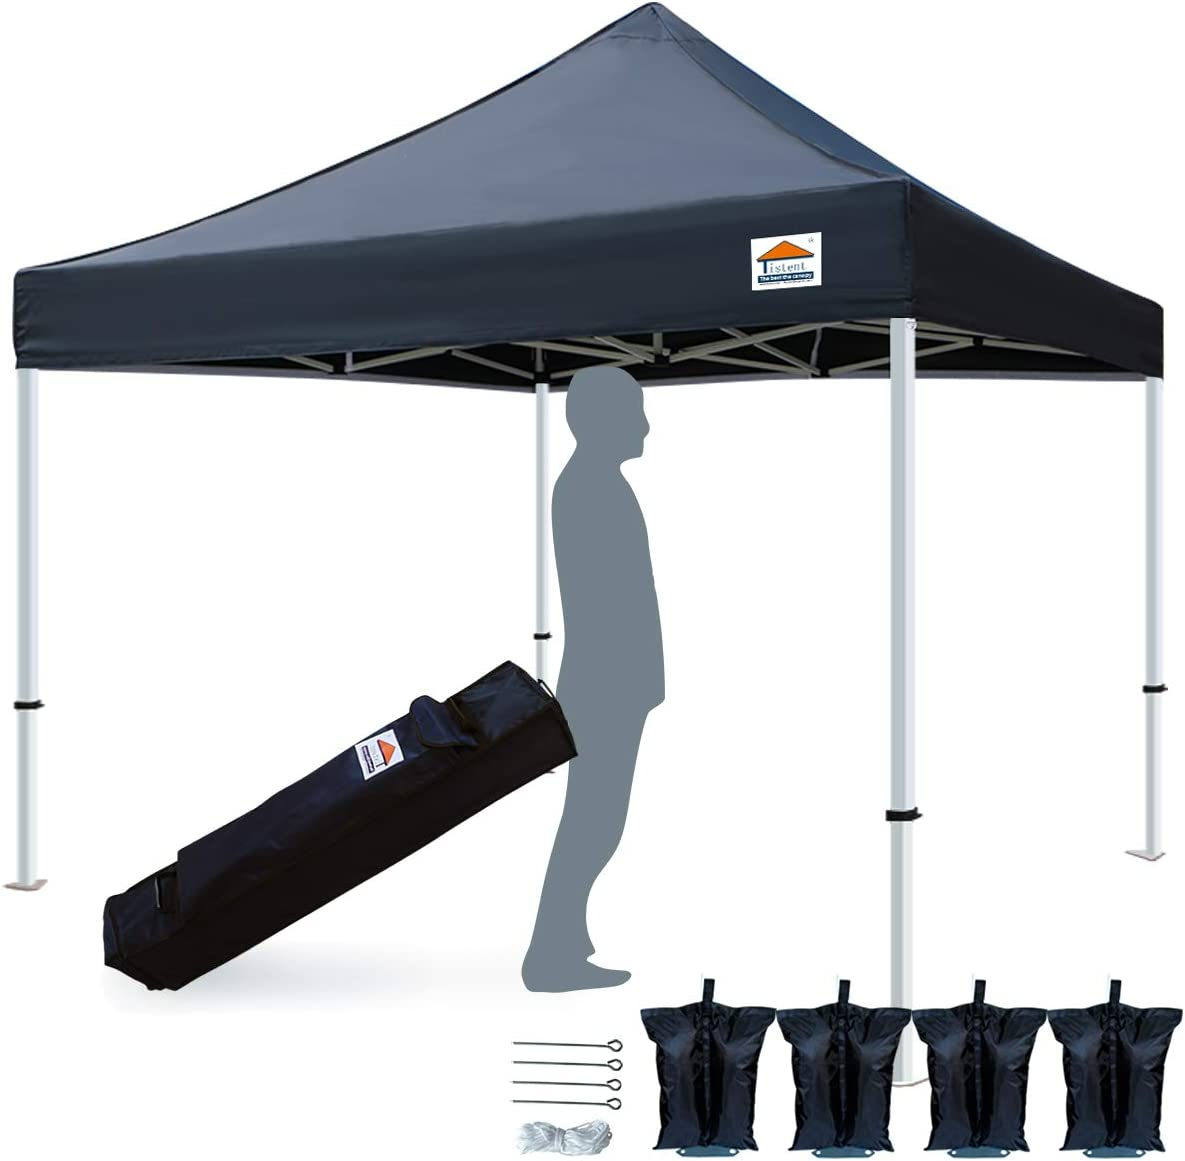 TISTENT 10 x10 Ez Pop Up Canopy Tent Commercial Instant Shelter with Heavy Duty Carrying Bag, 4 Canopy Sand Bags Black